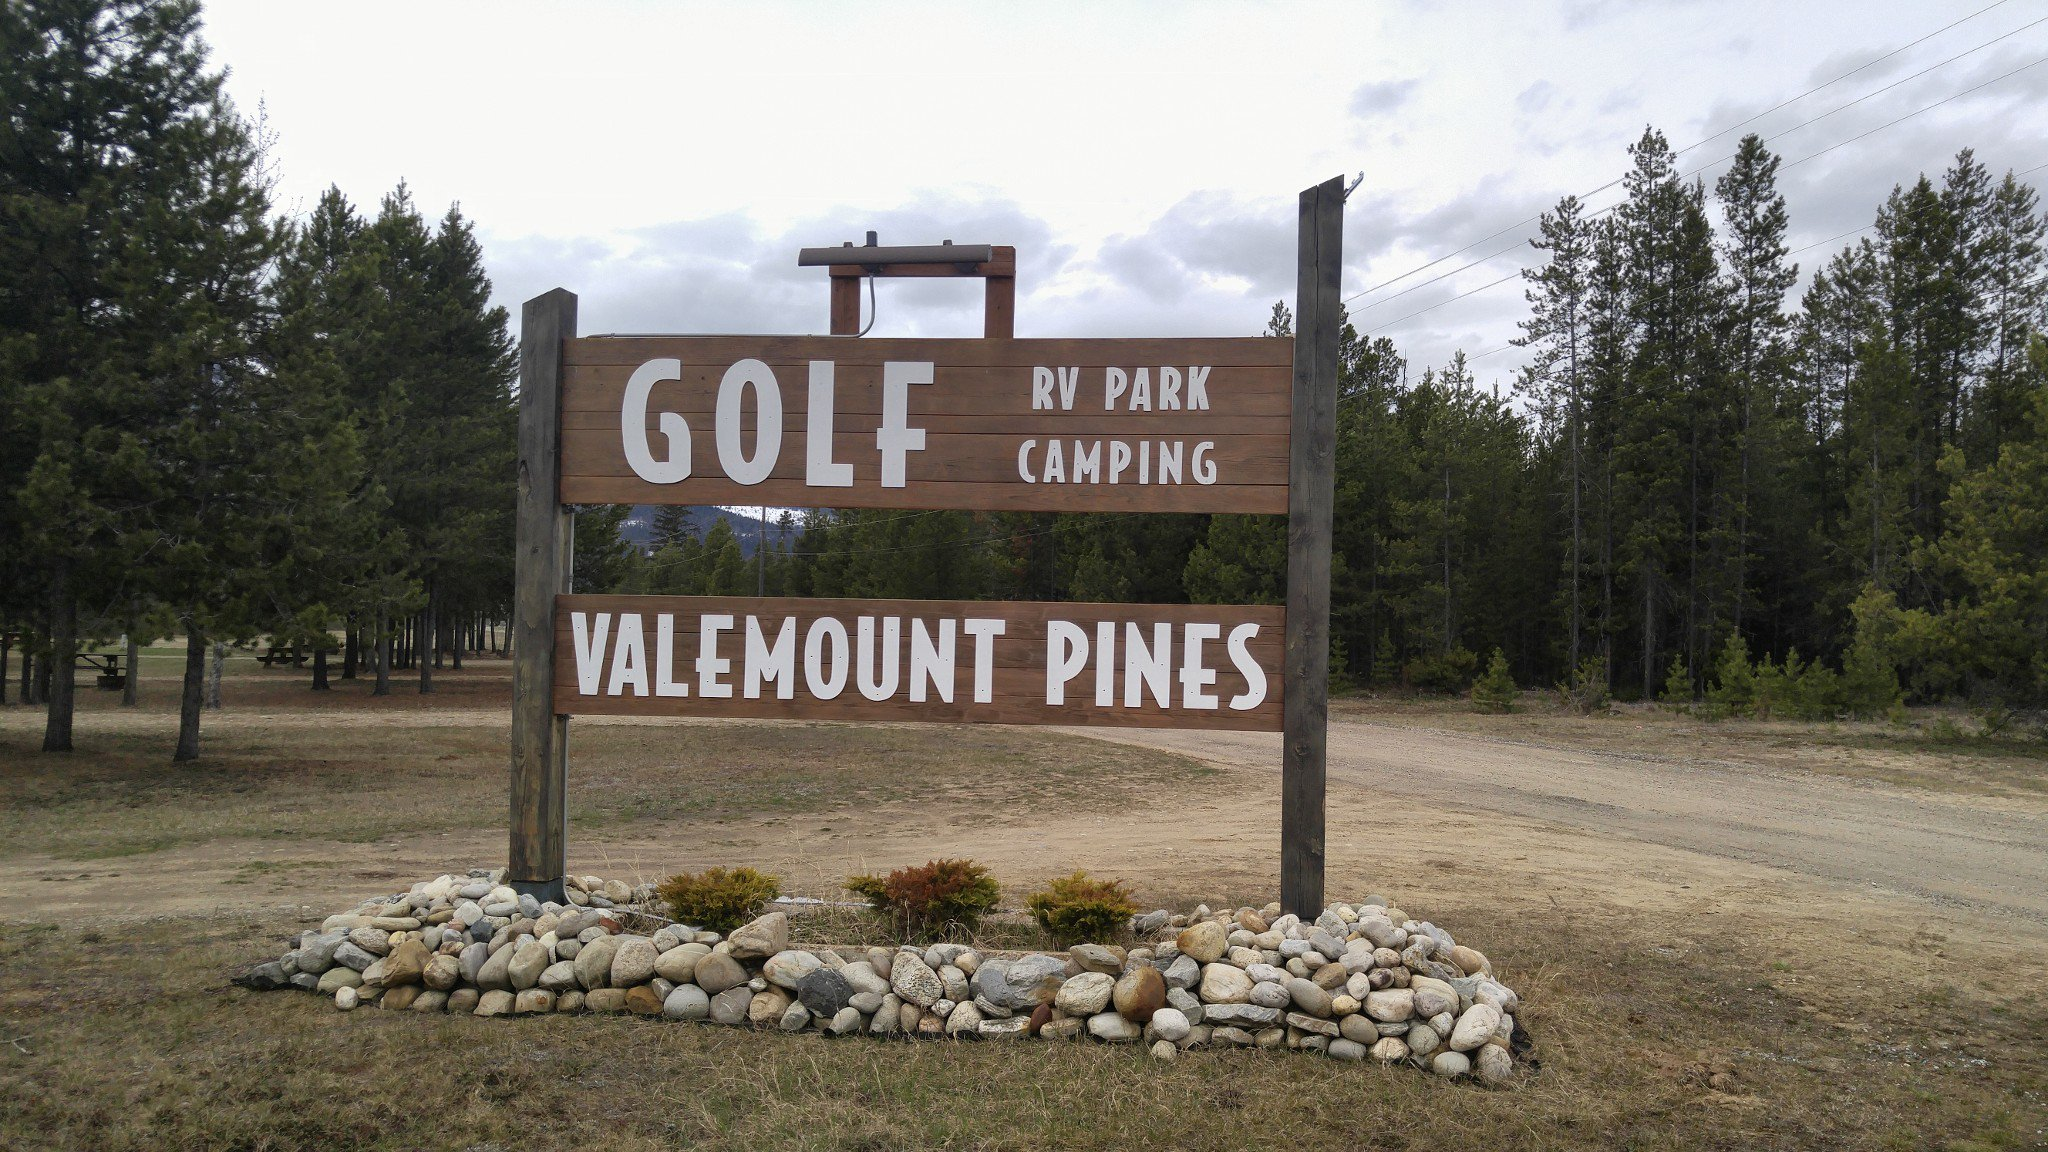 Main Photo: 1125 N North Highway 5 in valemount: Valemount - Town Land Commercial for sale (Out of Town)  : MLS®# C8012281